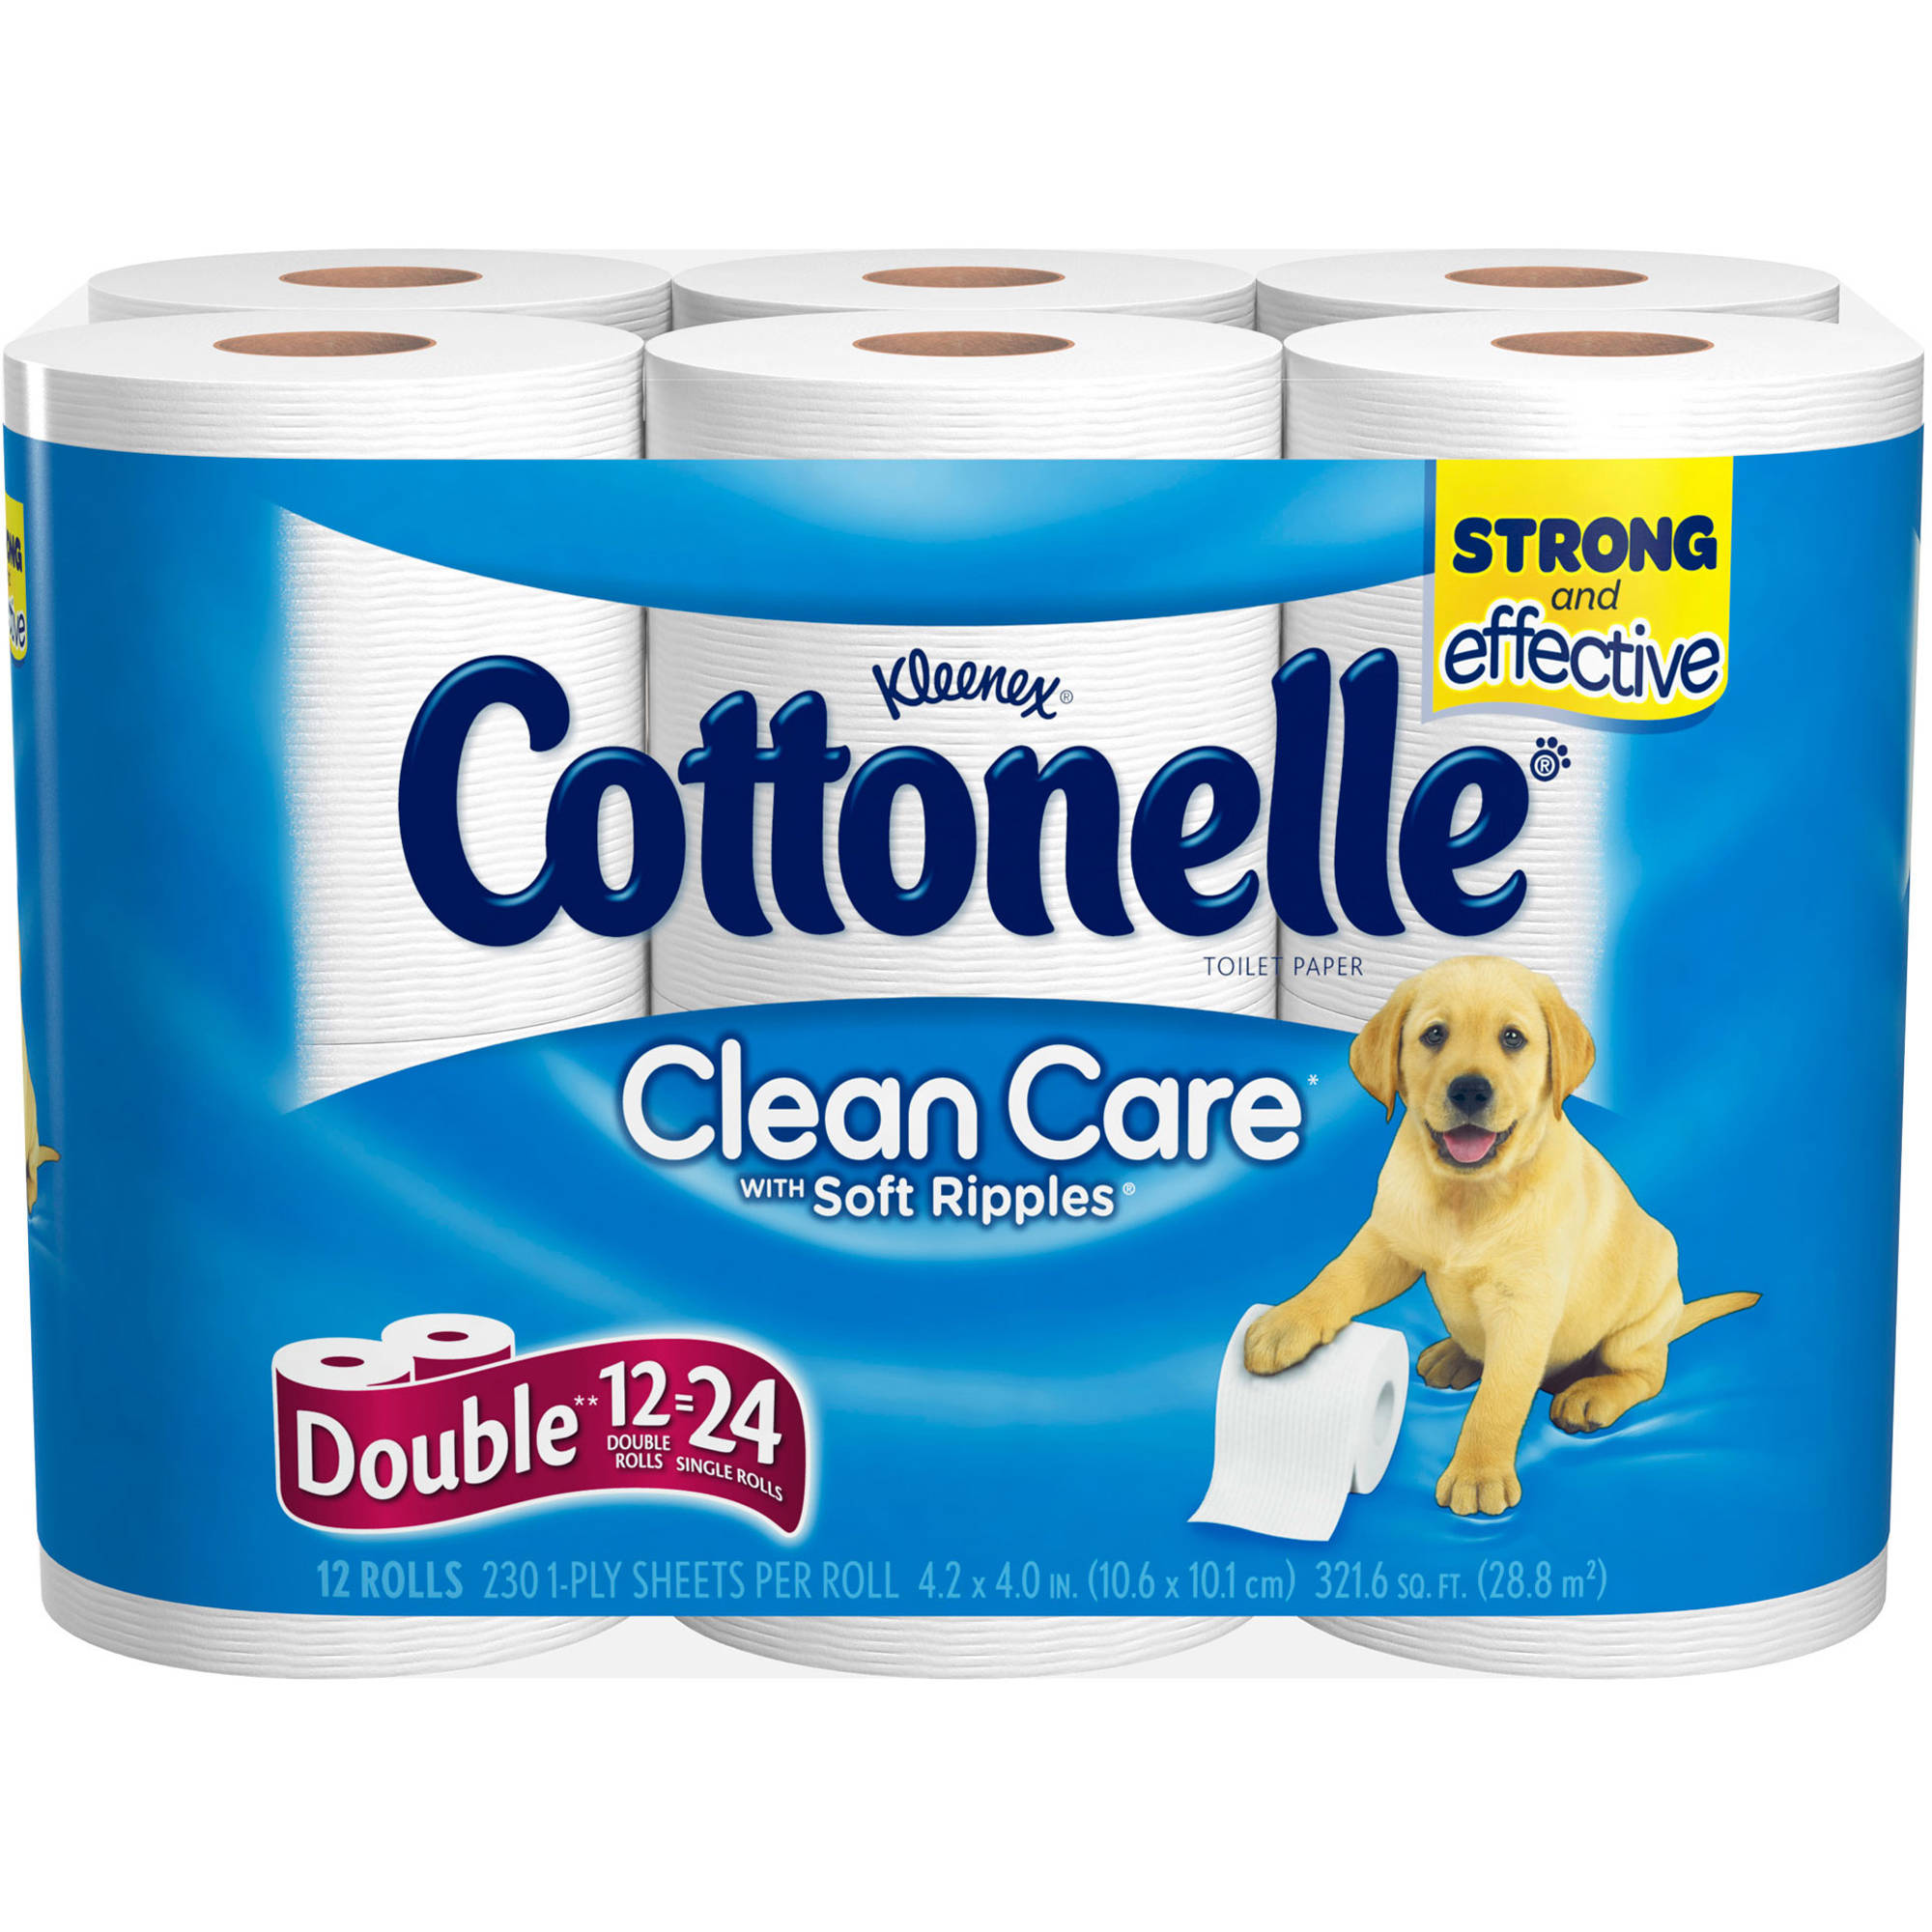 Cottonelle Clean Care Double Roll Toilet Paper With Soft Ripples